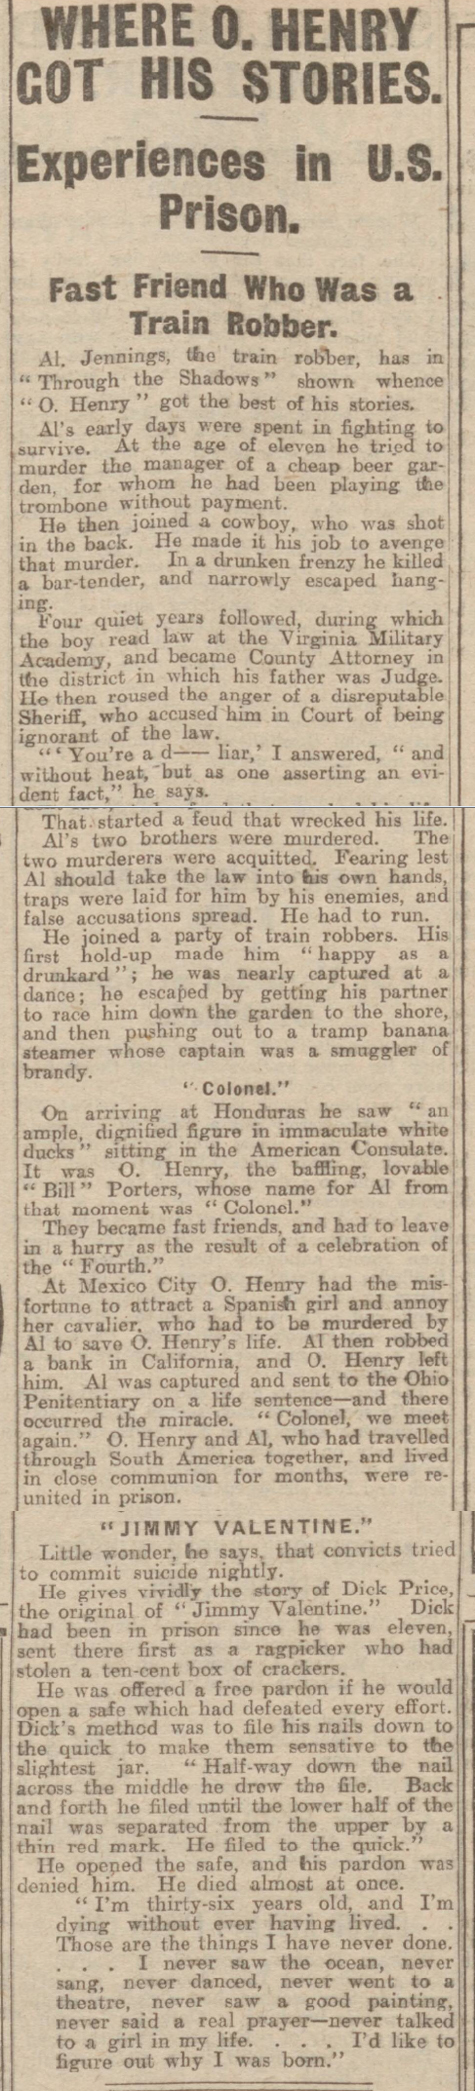 historical newspaper report about O. Henry